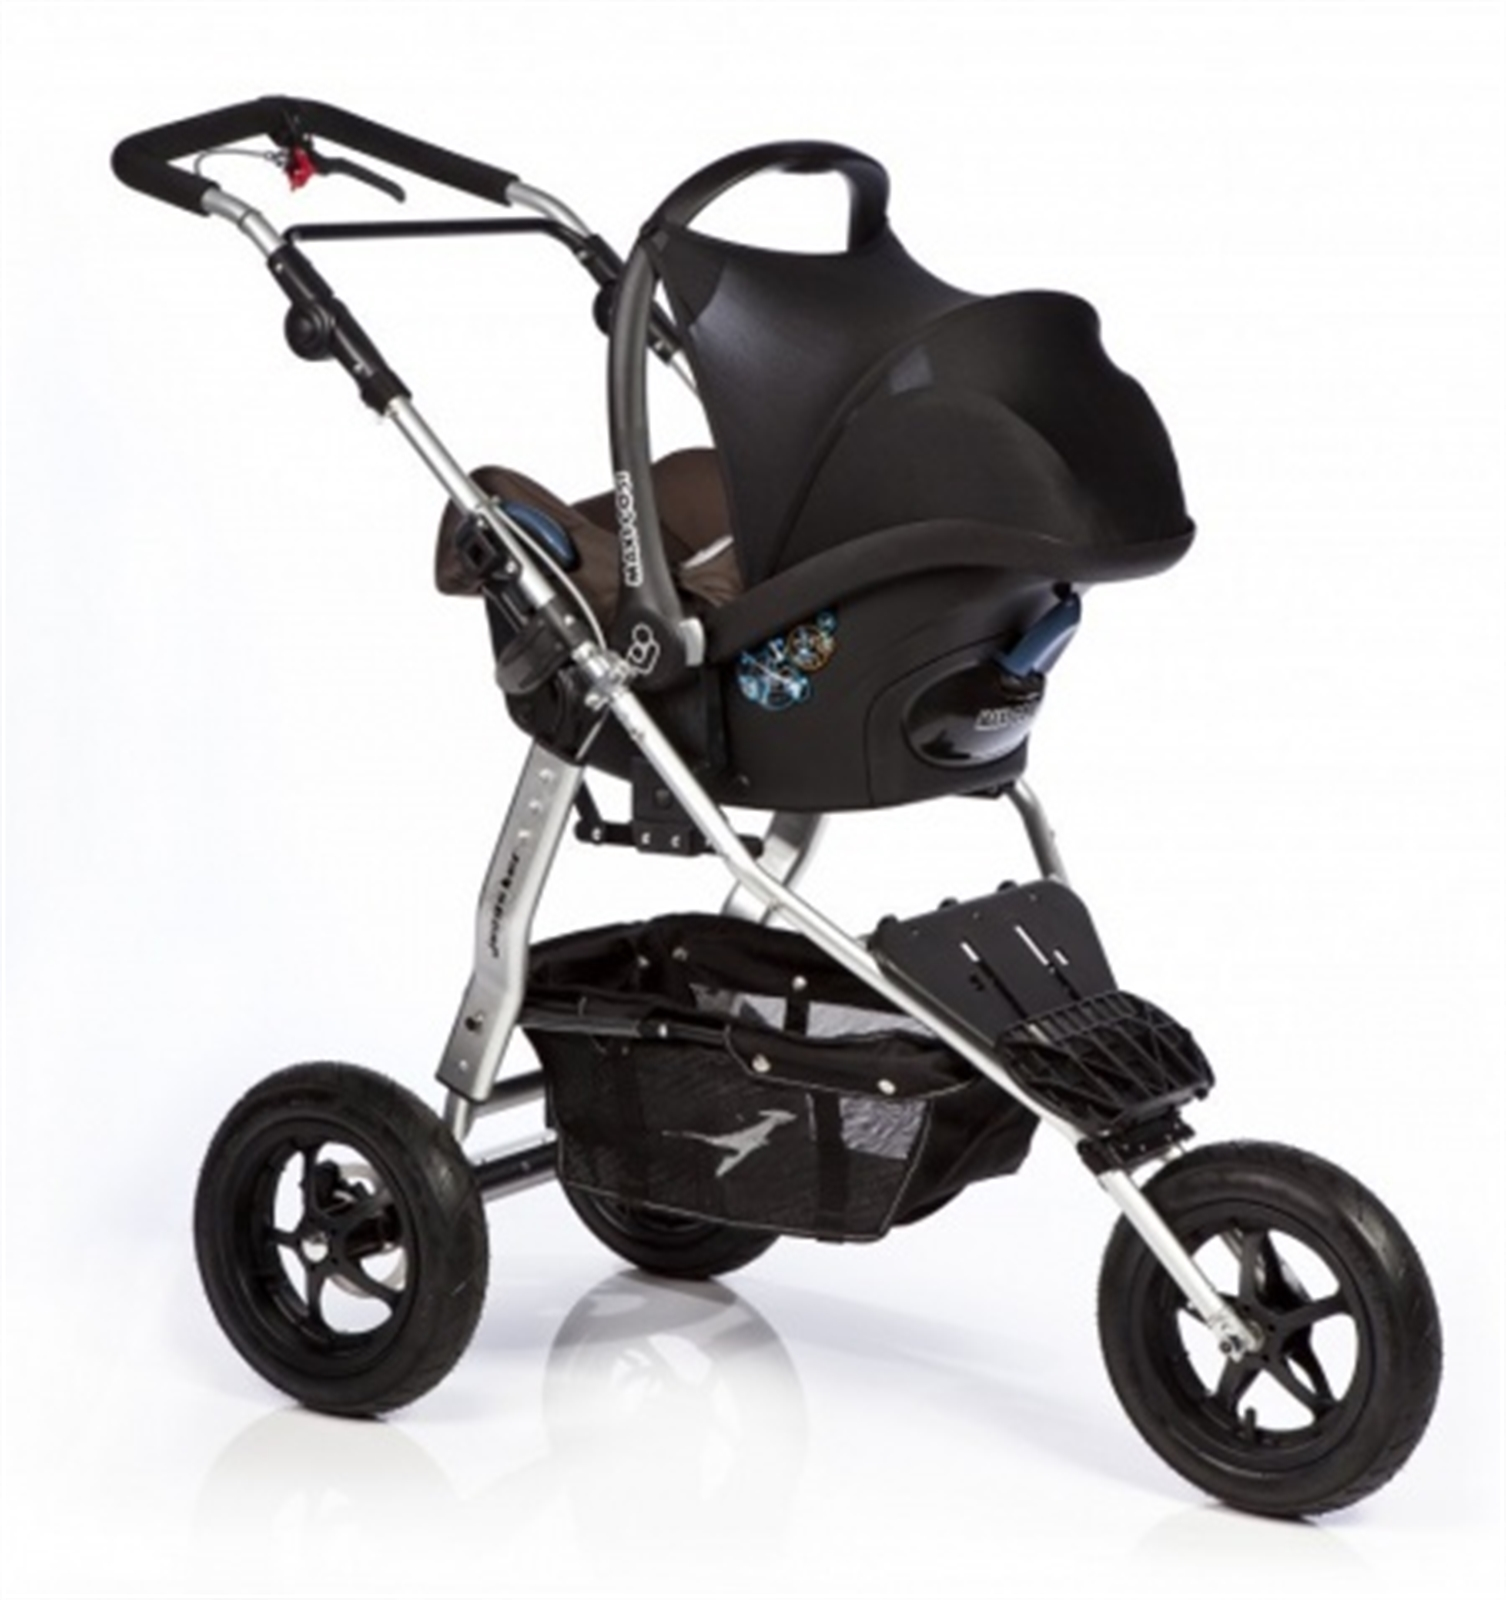 tfk bilstoladapter for maxi cosi cybex besafe. Black Bedroom Furniture Sets. Home Design Ideas